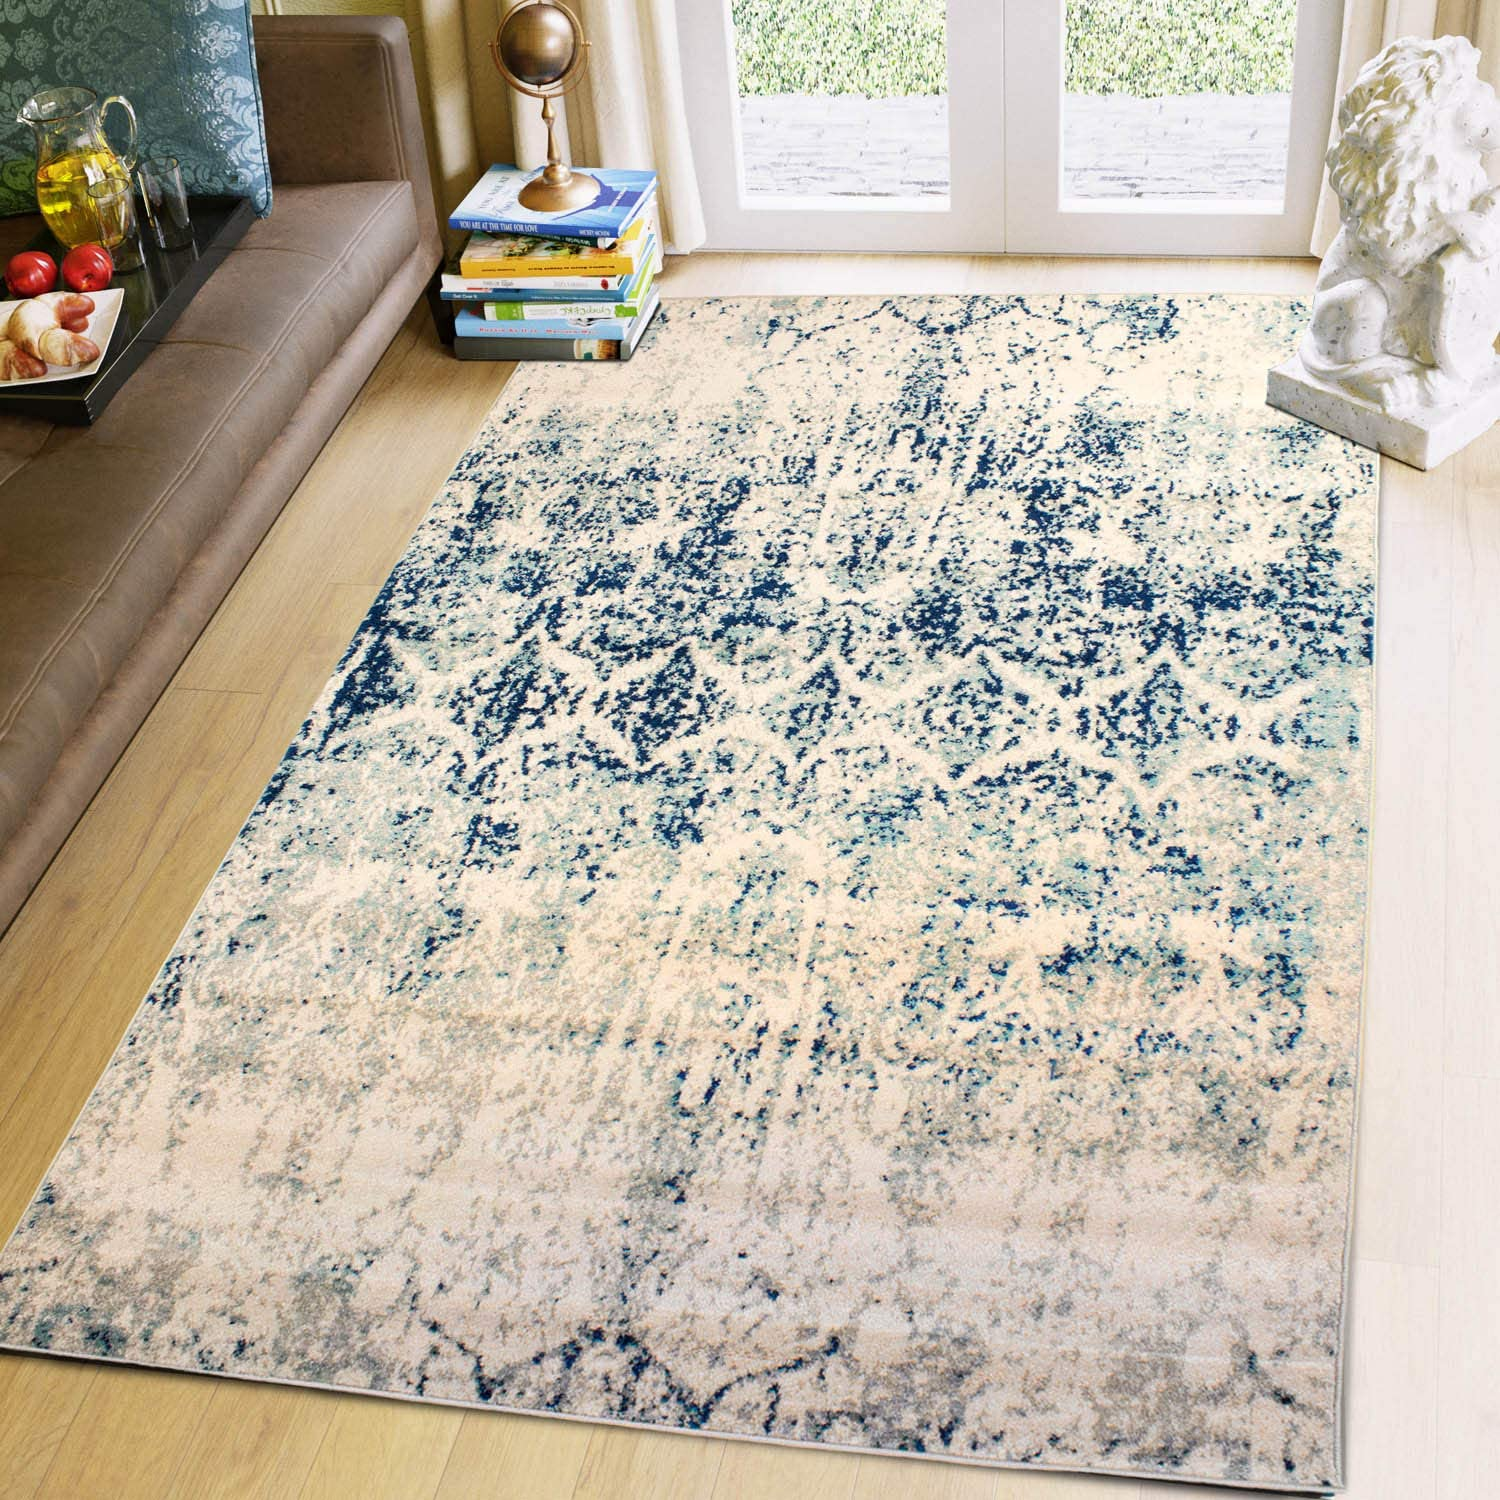 Super Area Rugs 8' X 10' Modern Faded Area Rug Abstract Dining Room Carpet, Ivory, Gray & Blue